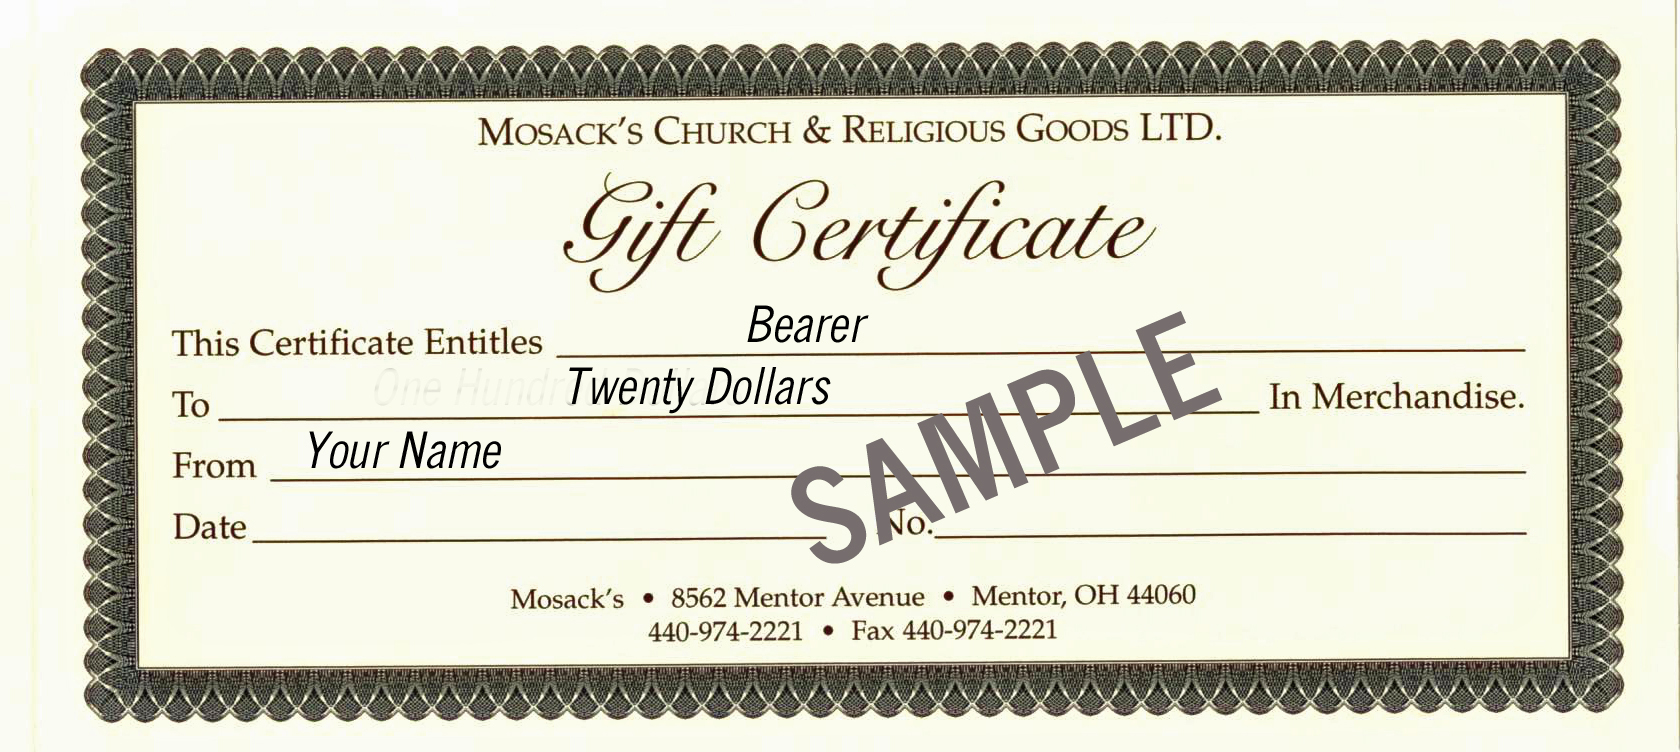 MOSACK'S $20 Gift Certificate